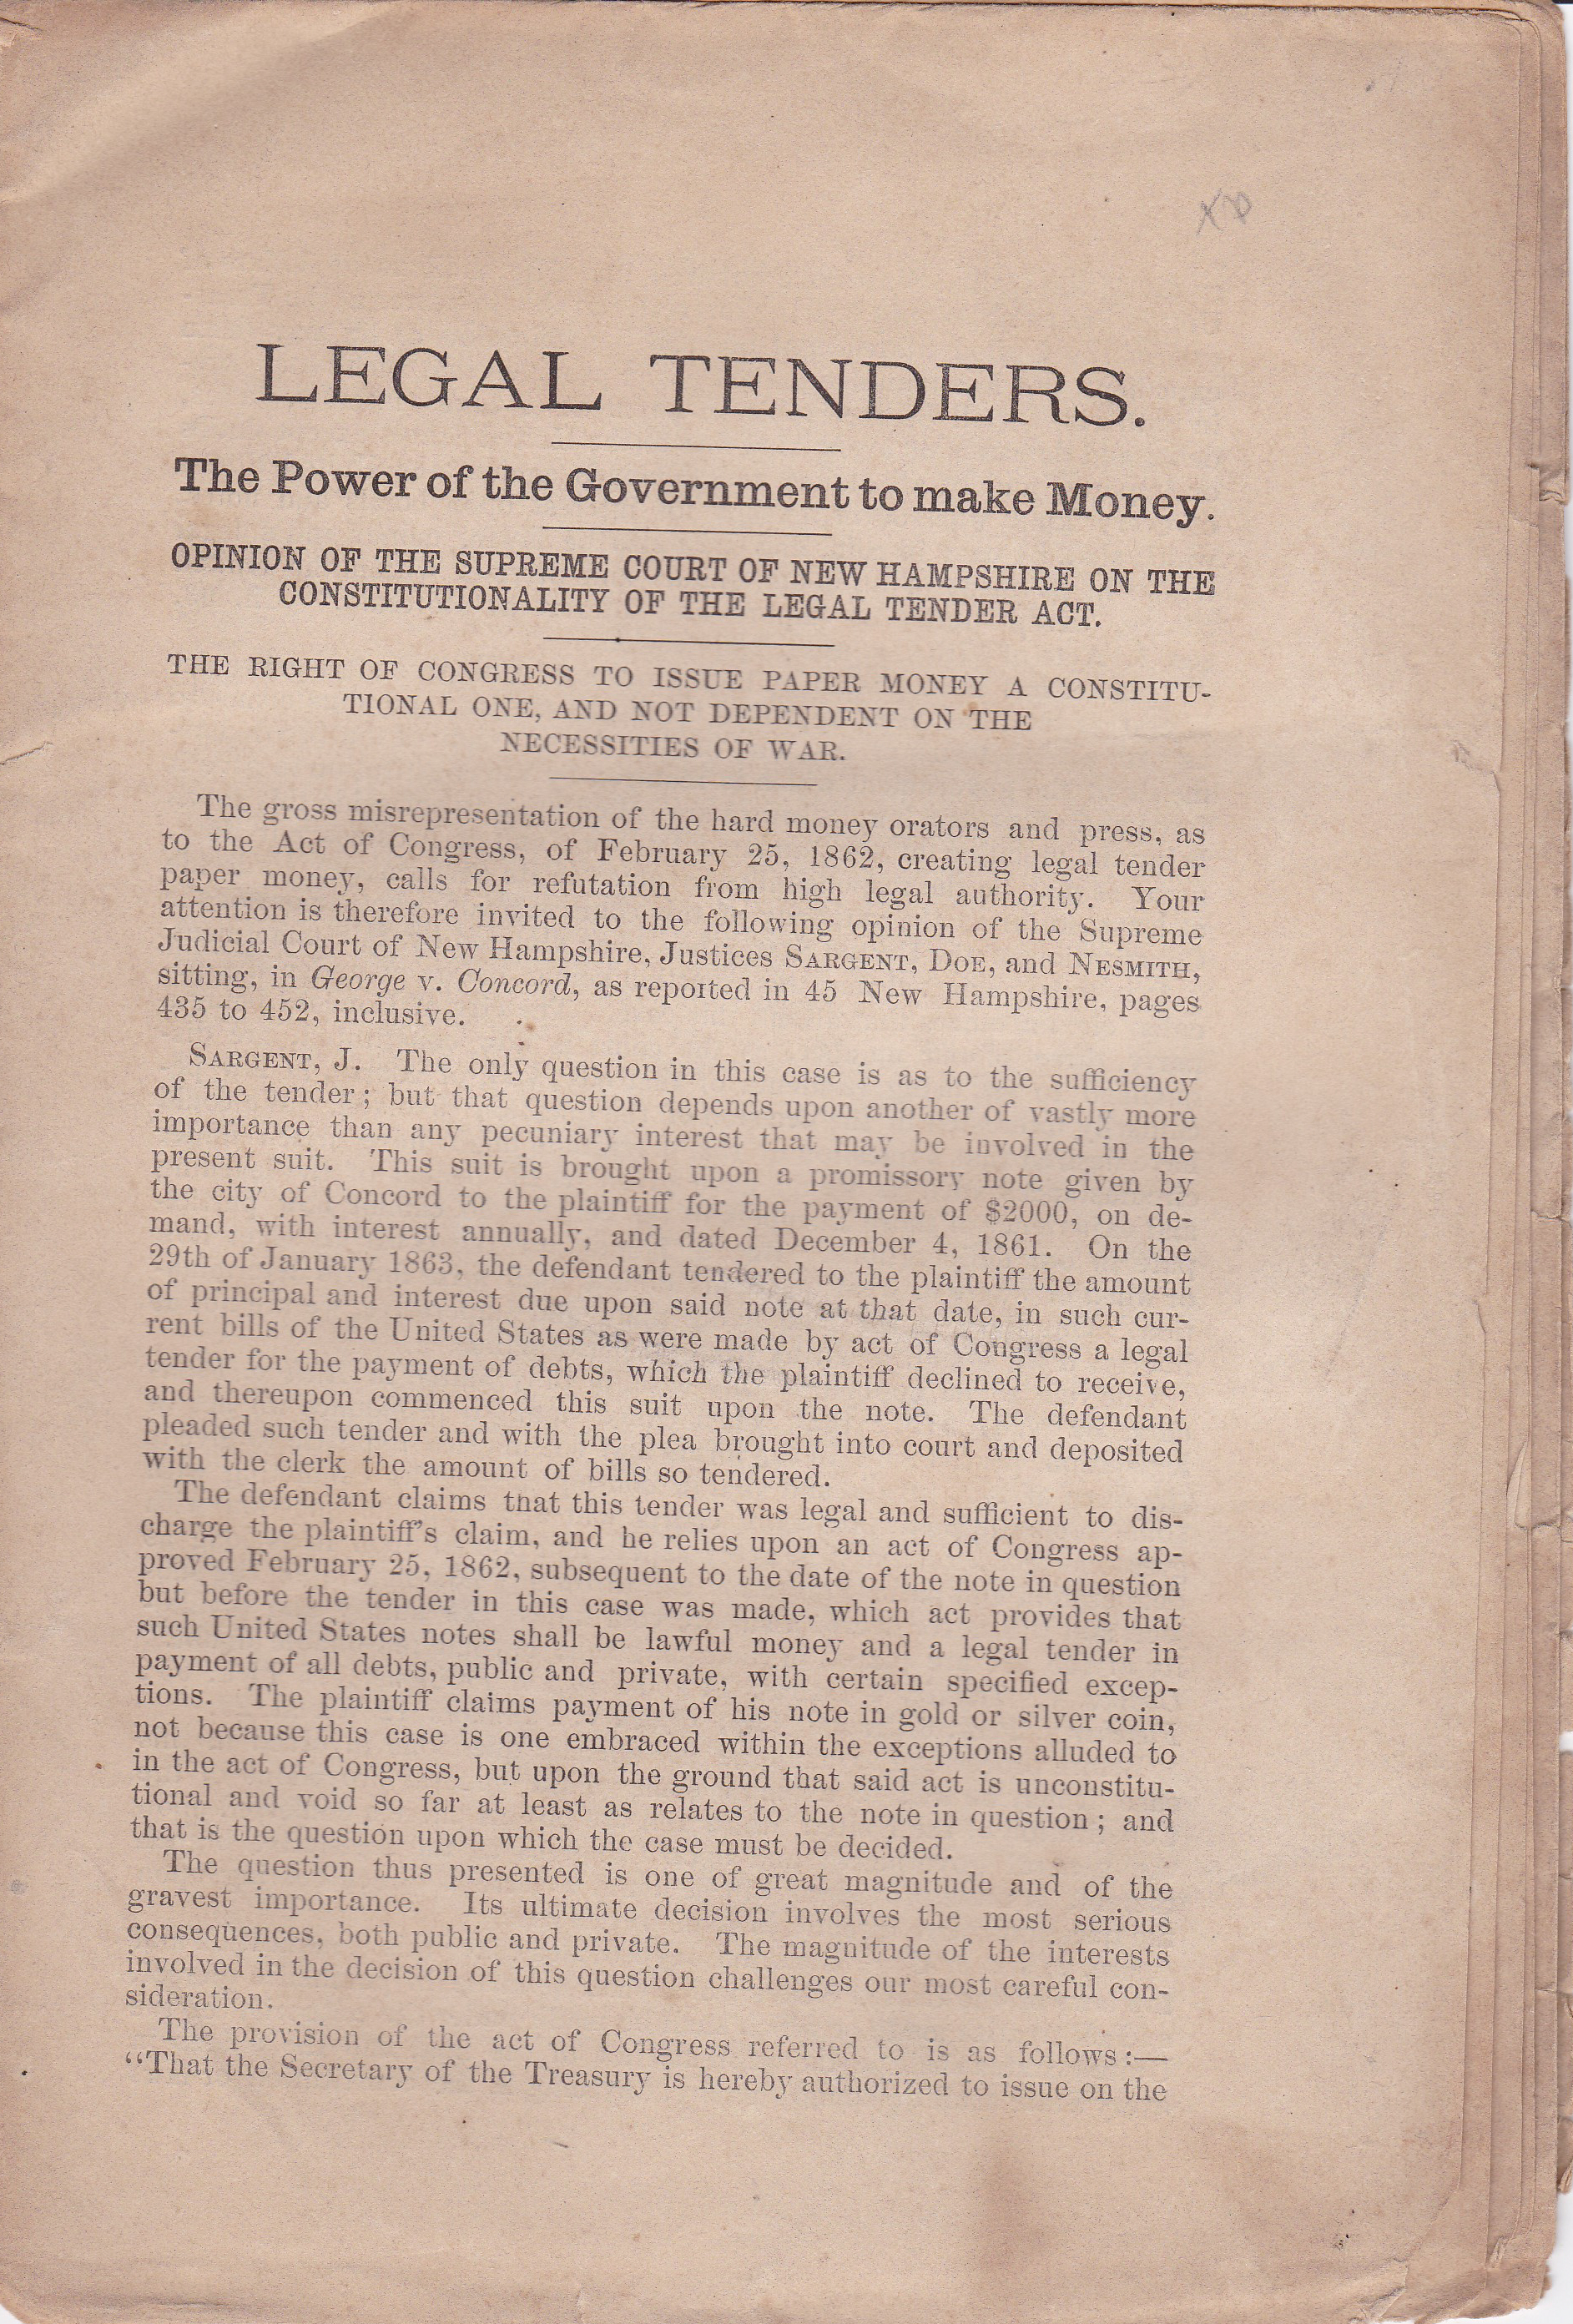 Image for LEGAL TENDERS. THE POWER OF THE GOVERNMENT TO MAKE MONEY. Opinion of the Supreme Court of New Hampshire on the Constitutionality of the Legal Tender Act. The Right of Congress to Issue Paper Money a Constitutional One, and Not Dependent on the Necessities of War.